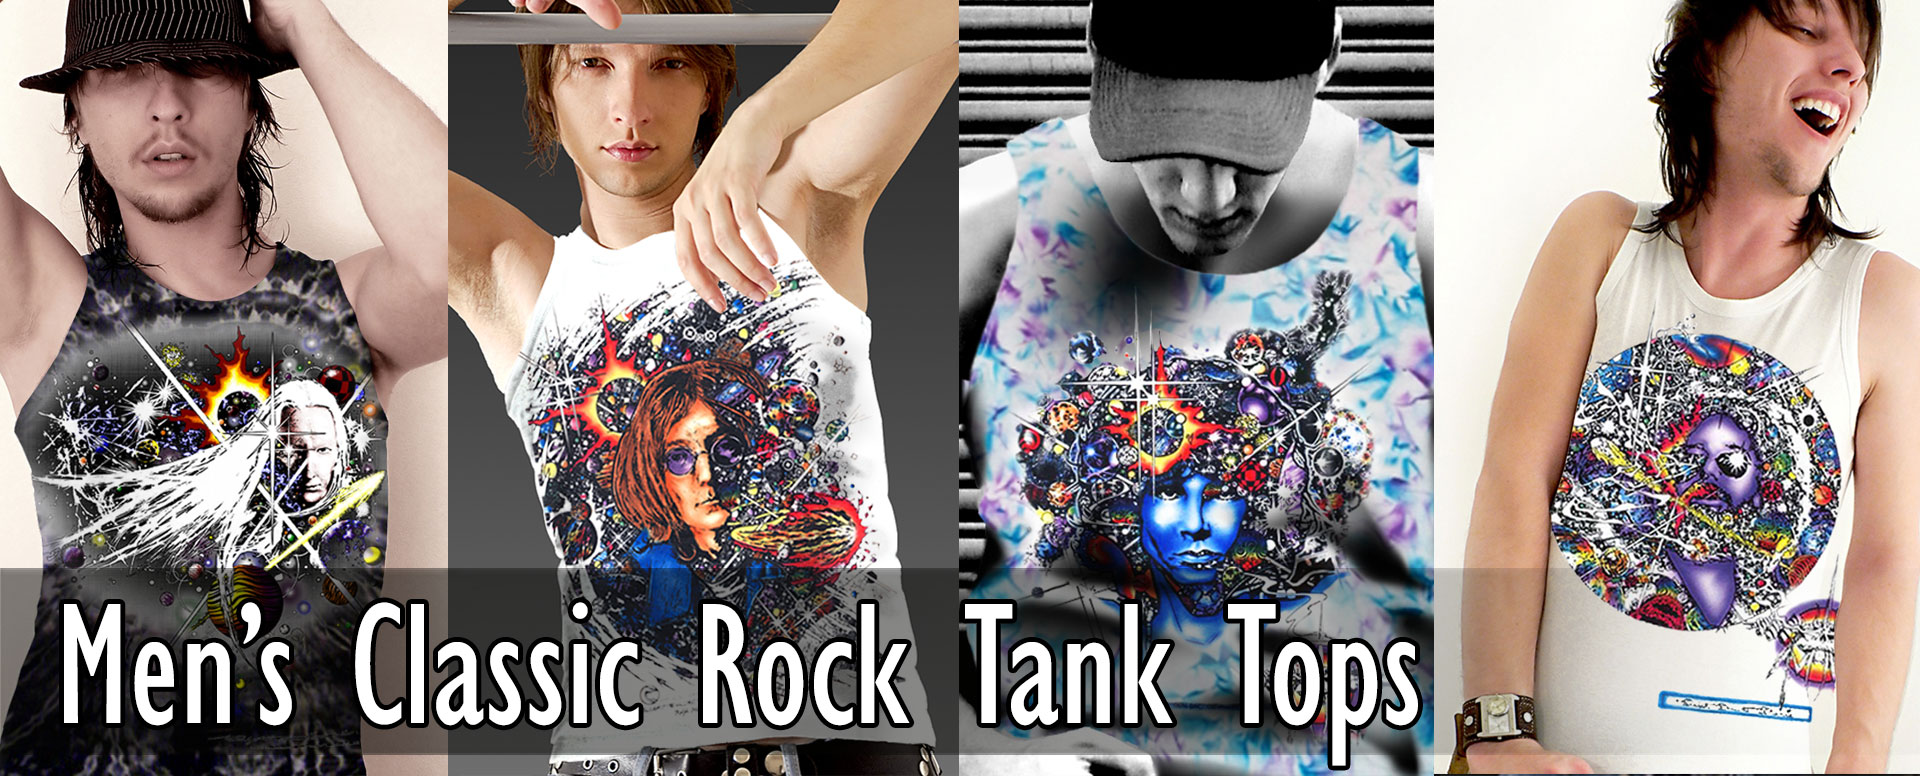 Men's Classic Rock Tank Tops